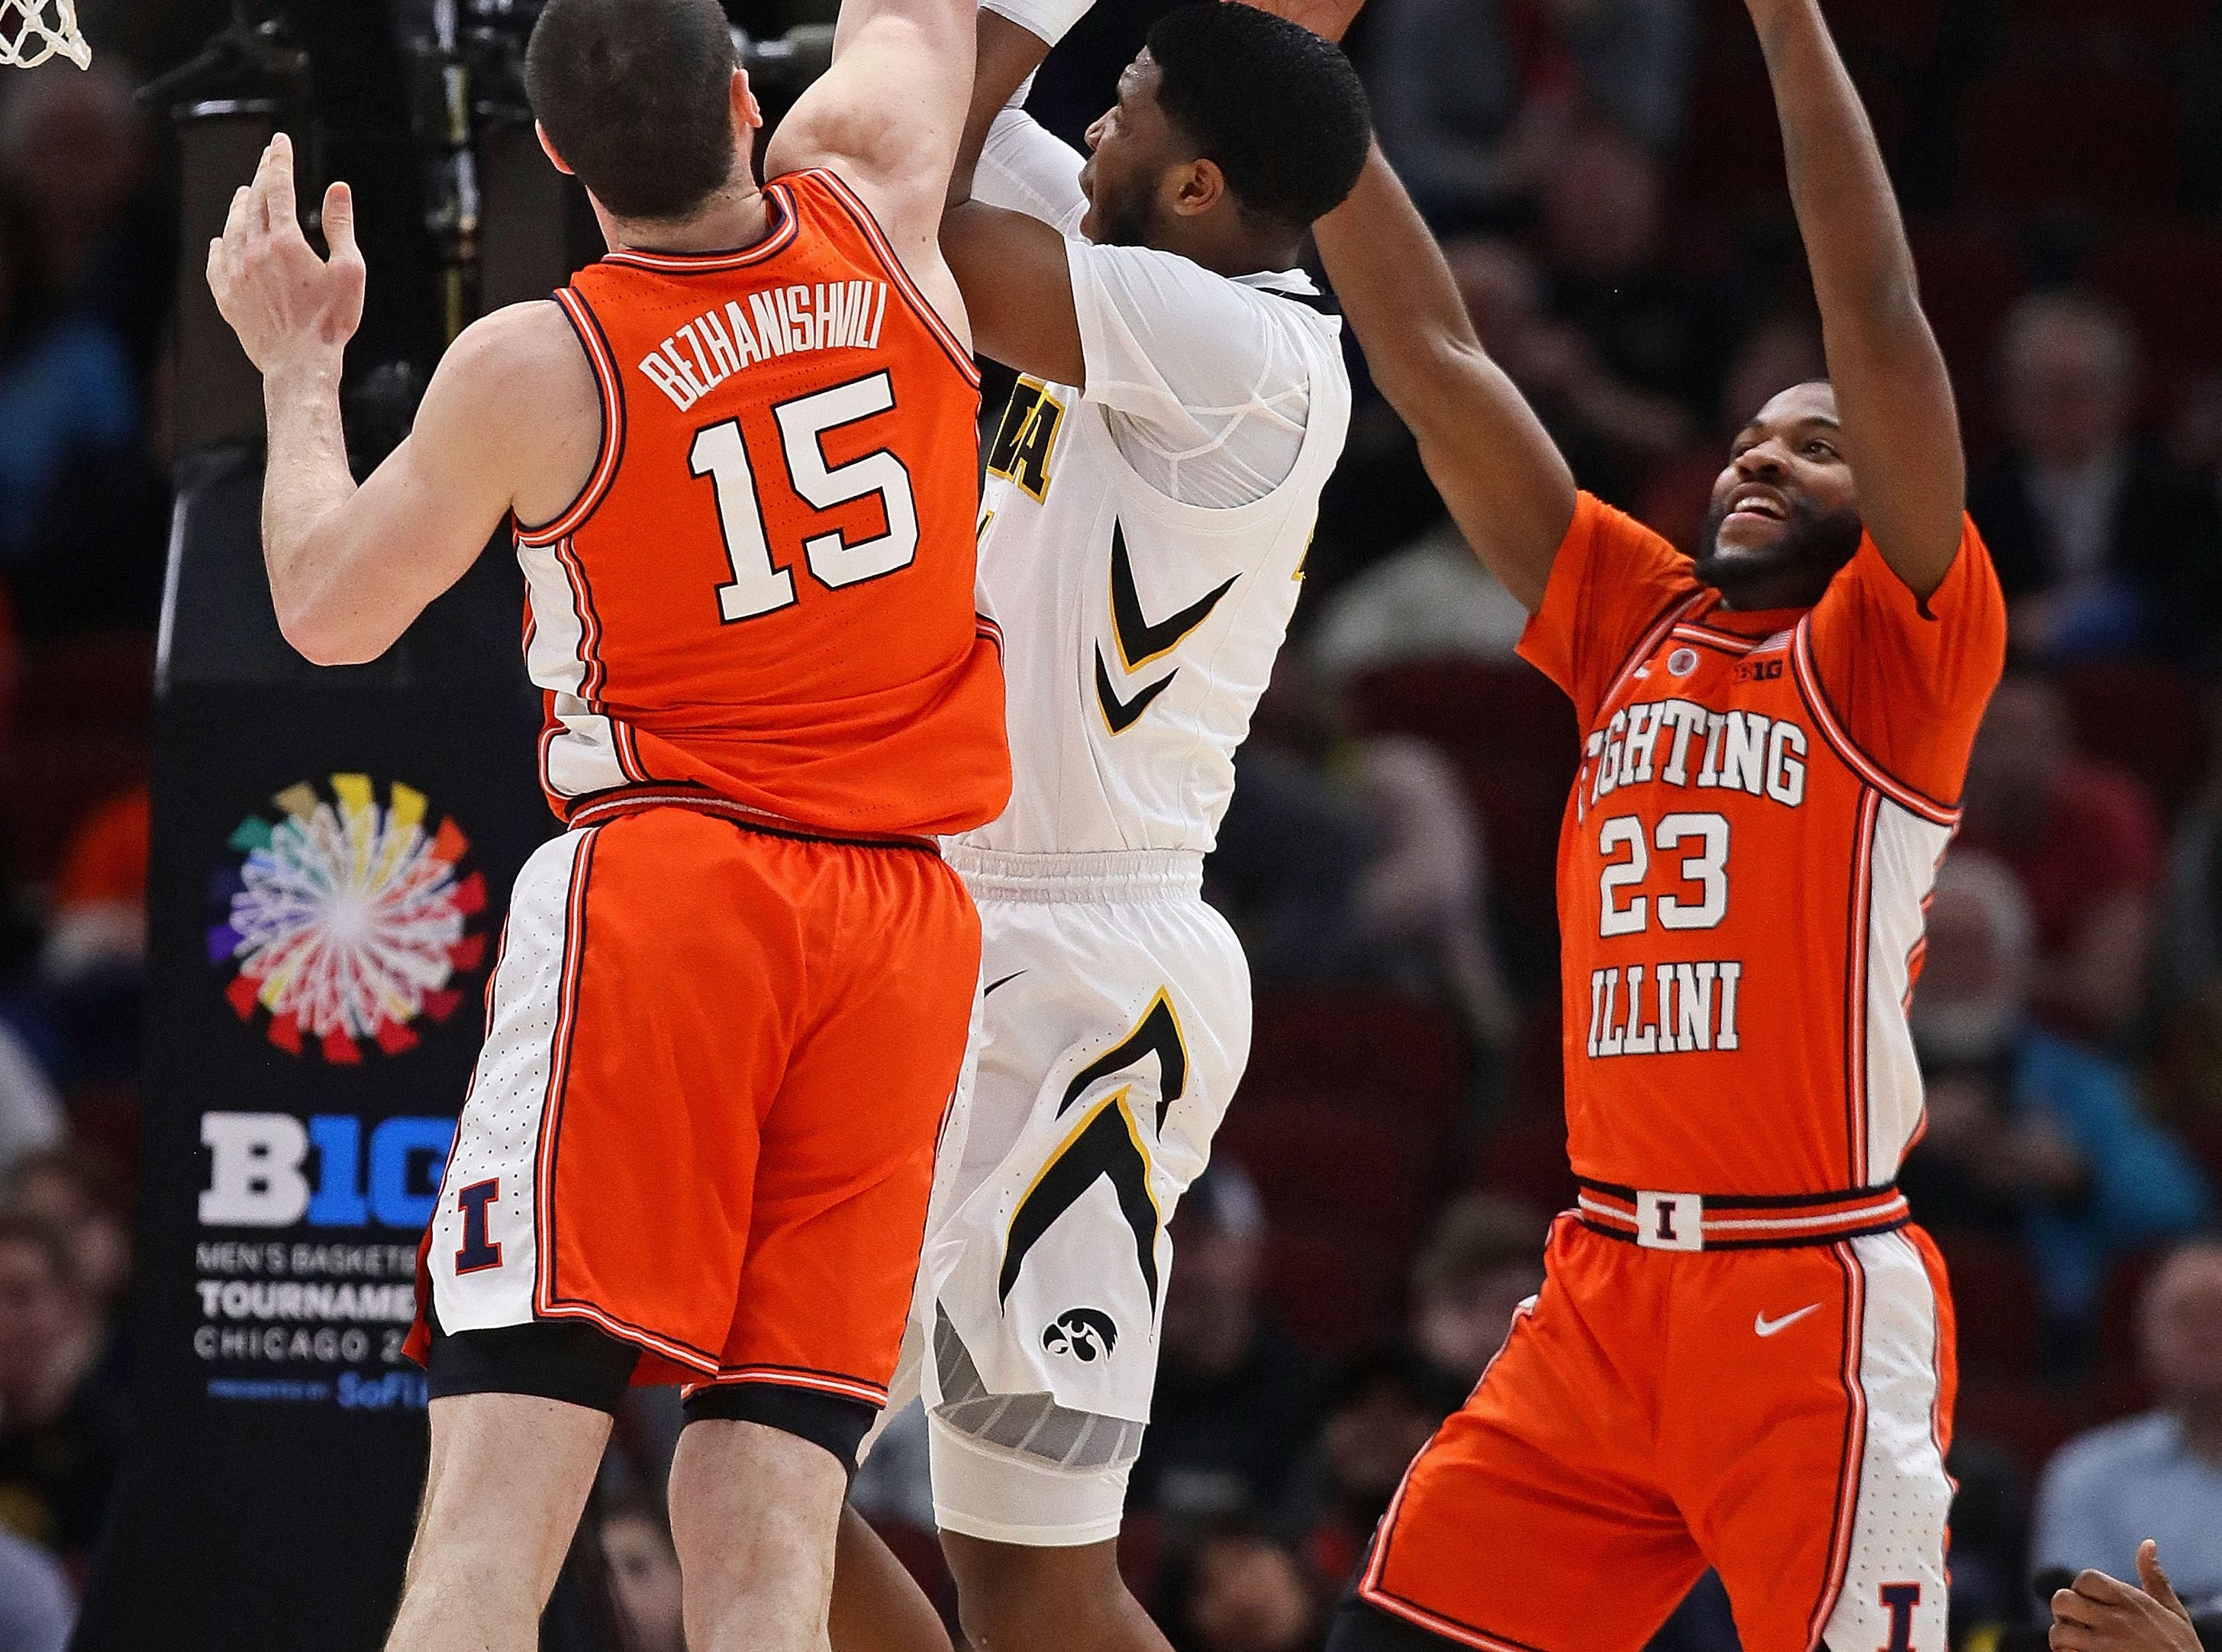 CHICAGO, ILLINOIS - MARCH 14: Isaiah Moss #4 of the Iowa Hawkeyes shoots between Giorgi Bezhanishvili #15 and Aaron Jordan #23 of the Illinois Fighting Illini at the United Center on March 14, 2019 in Chicago, Illinois.  (Photo by Jonathan Daniel/Getty Images)